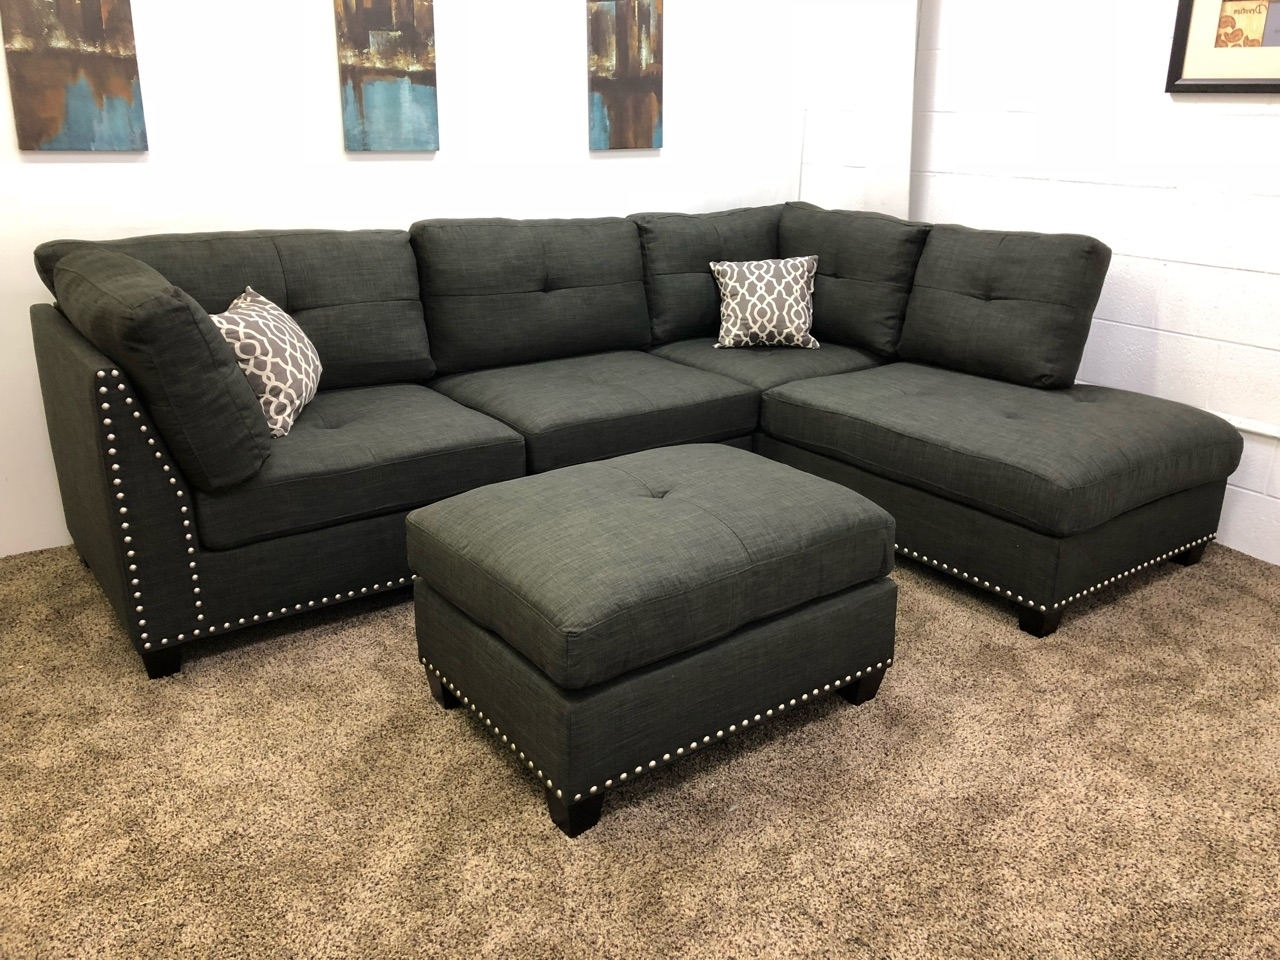 Popular 0 In Stock)#n753R  $250 Down  Black Linen Studded Linen Sectional Intended For Sectionals With Ottoman And Chaise (View 5 of 15)